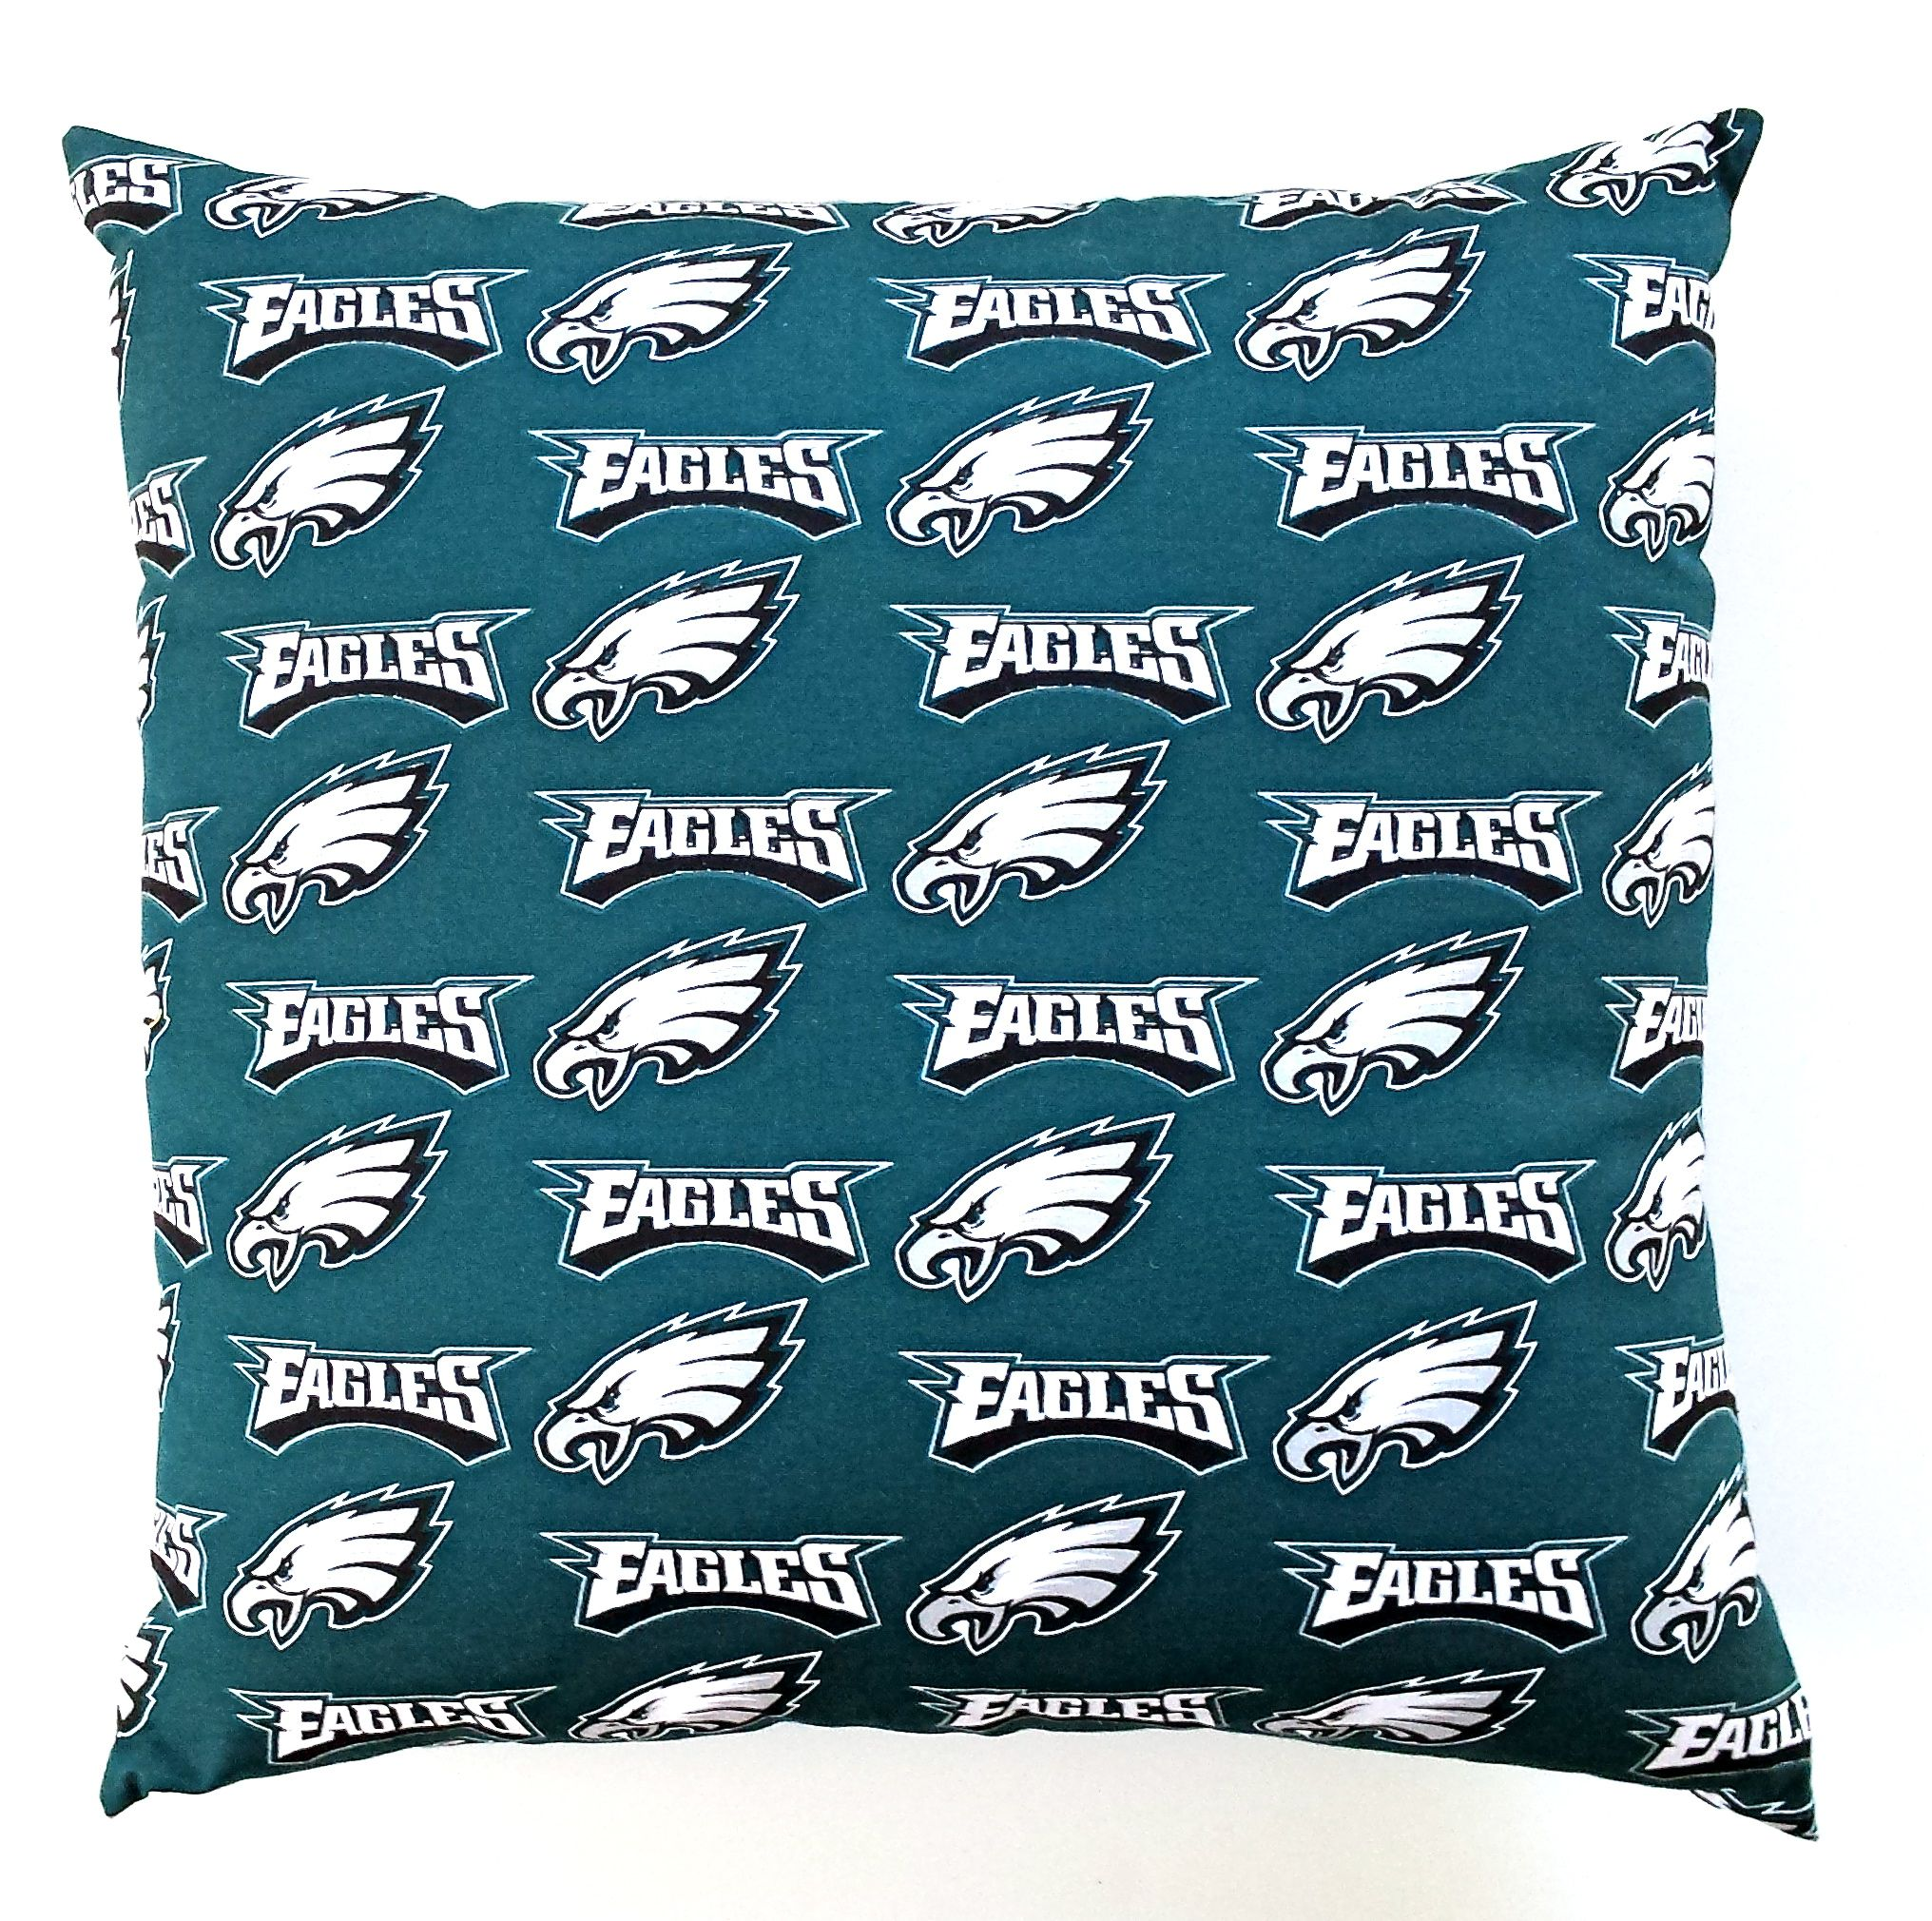 Philadelphia eagles pillow cover with a zipper for easy cleaning